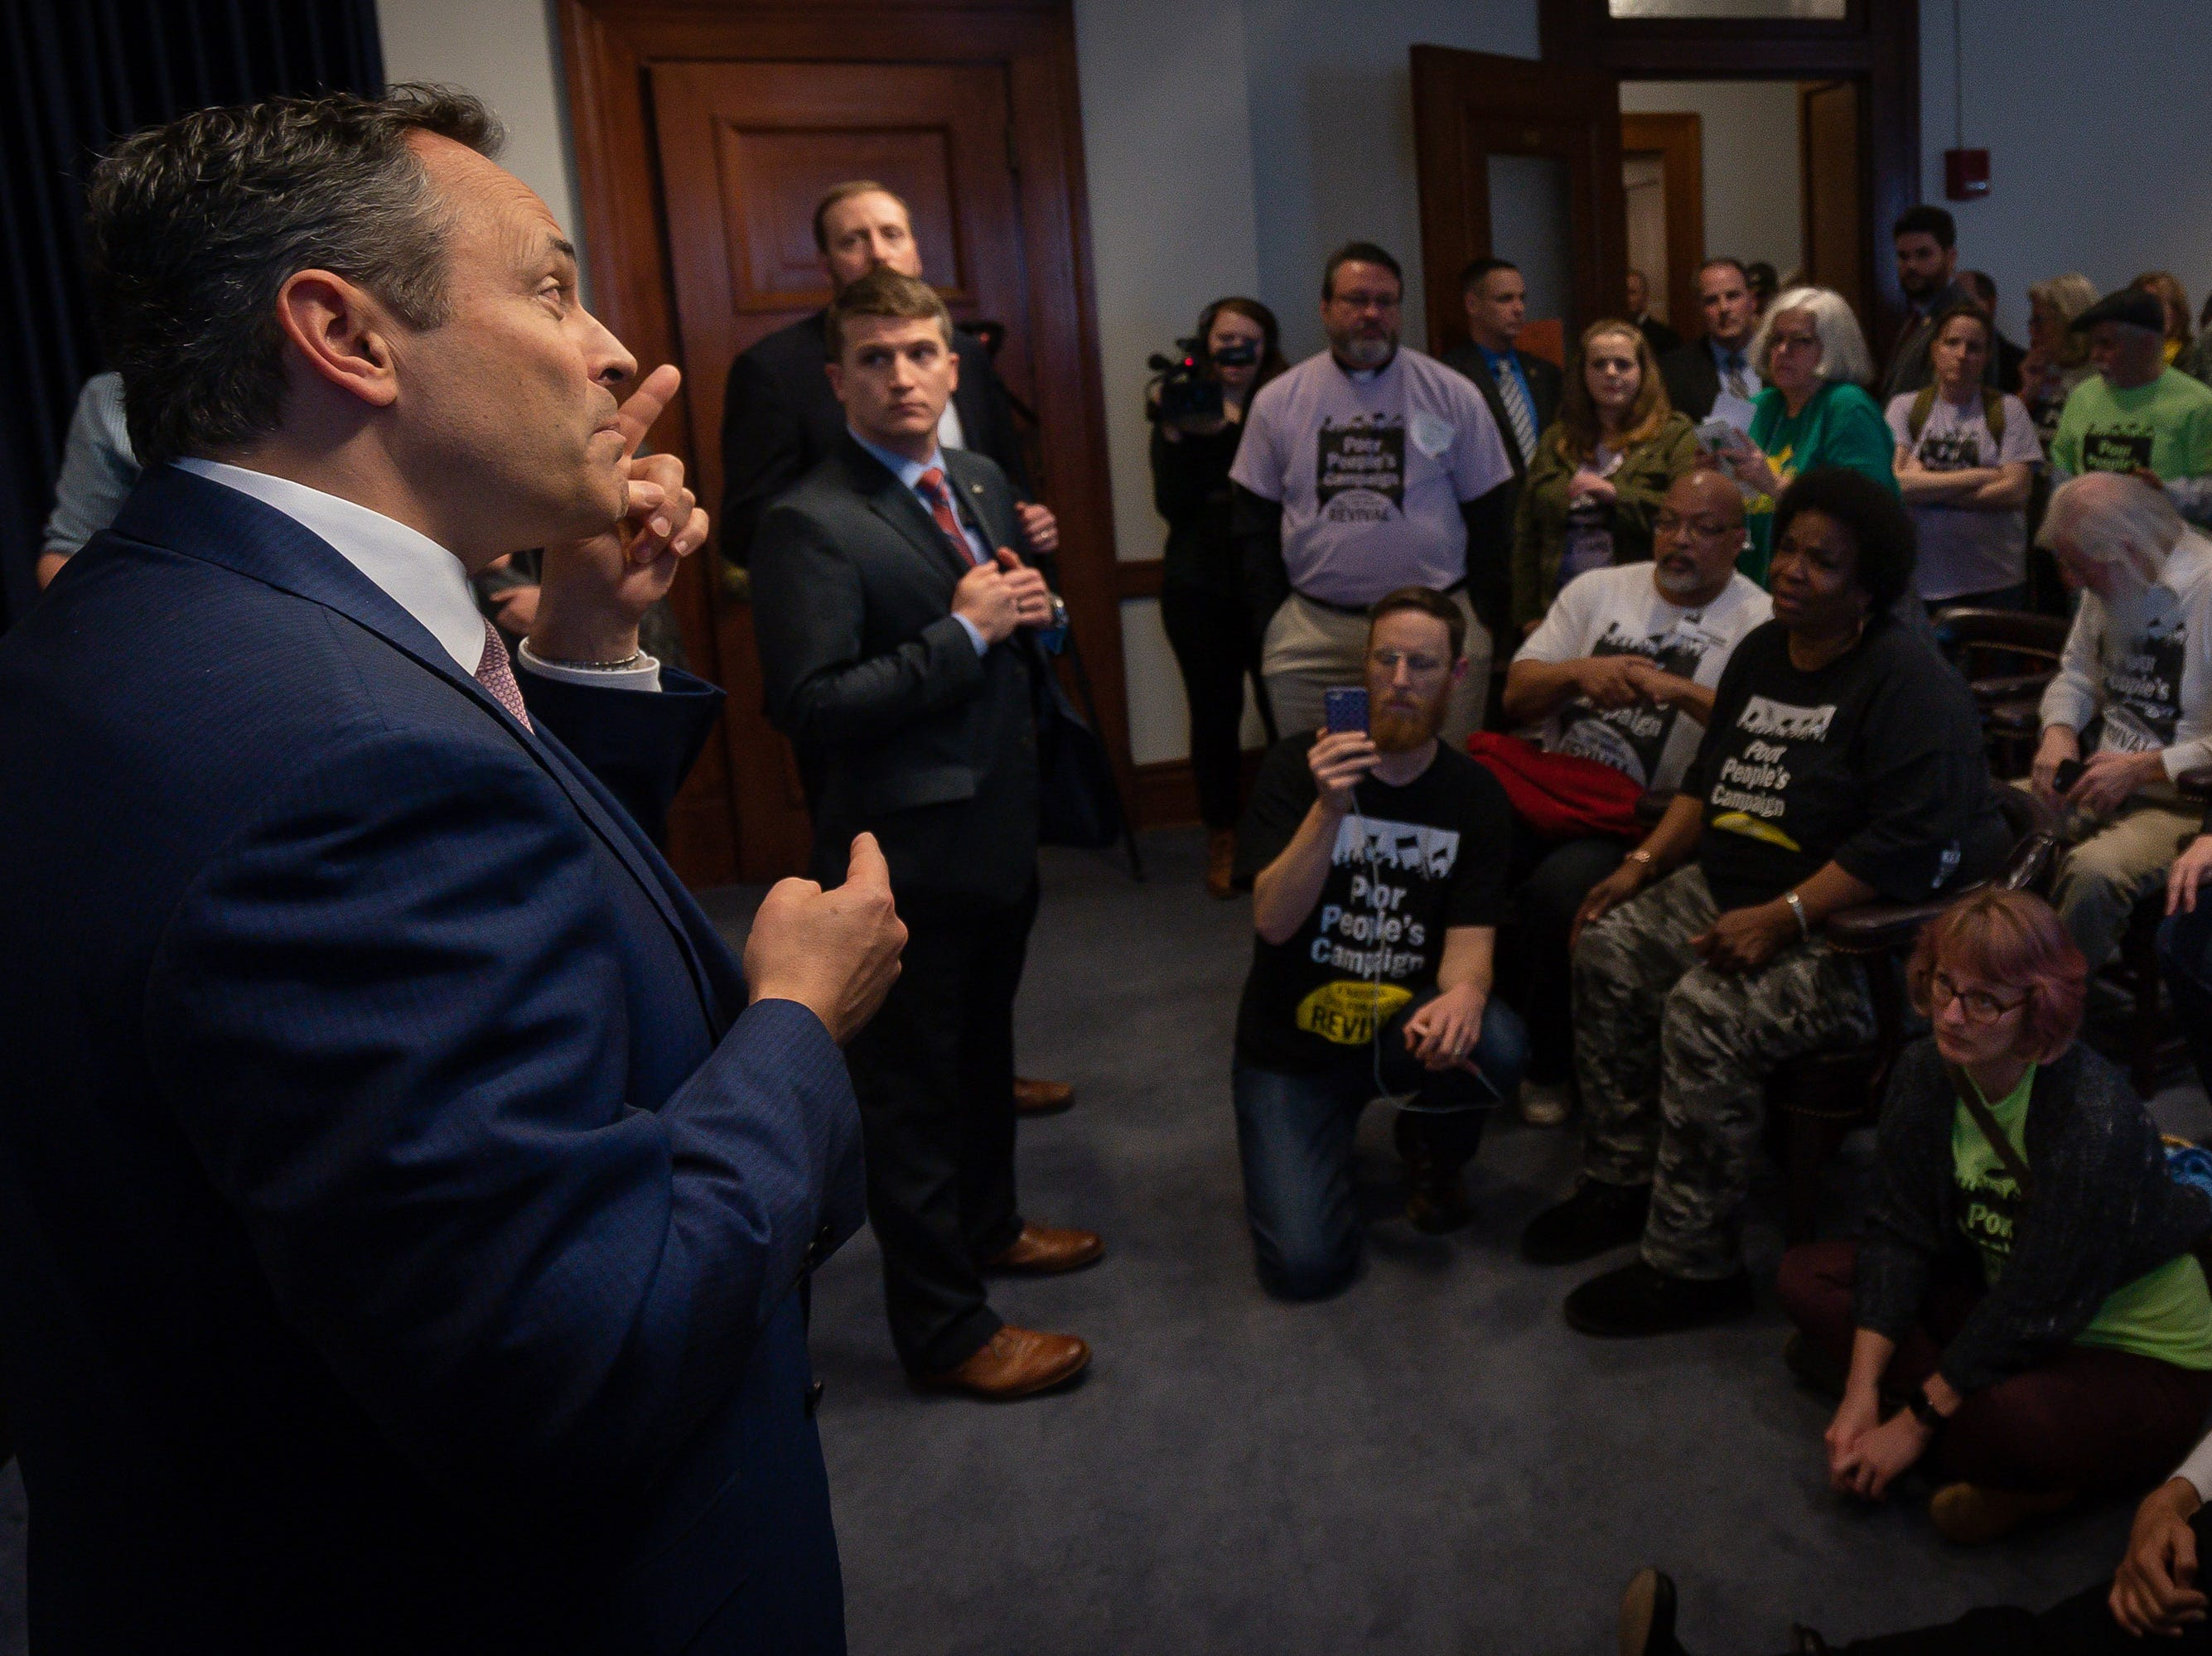 Gov. Matt Bevin meets with members of the Kentucky Poor People's Campaign at the Capital building in Frankfort, Ky, Tuesday, Feb. 5, 2018